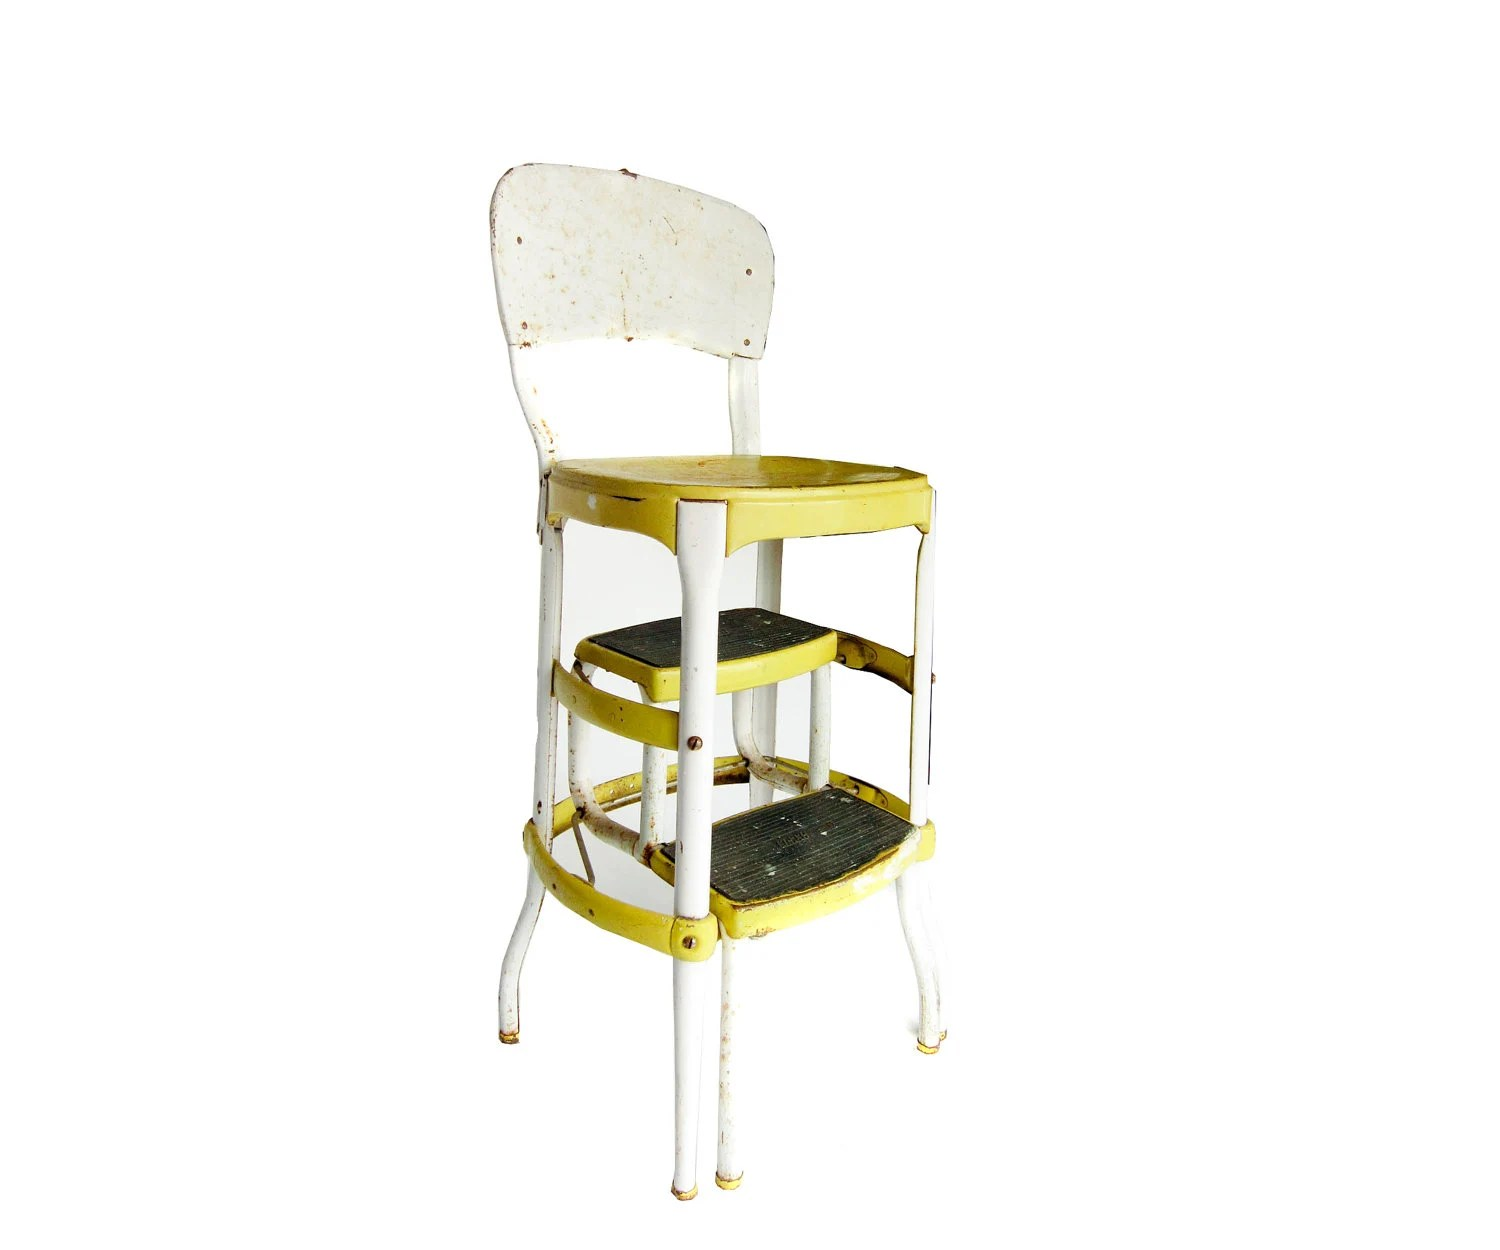 Vintage Yellow and White Cosco Step Stool Ladder Chair - pastoria